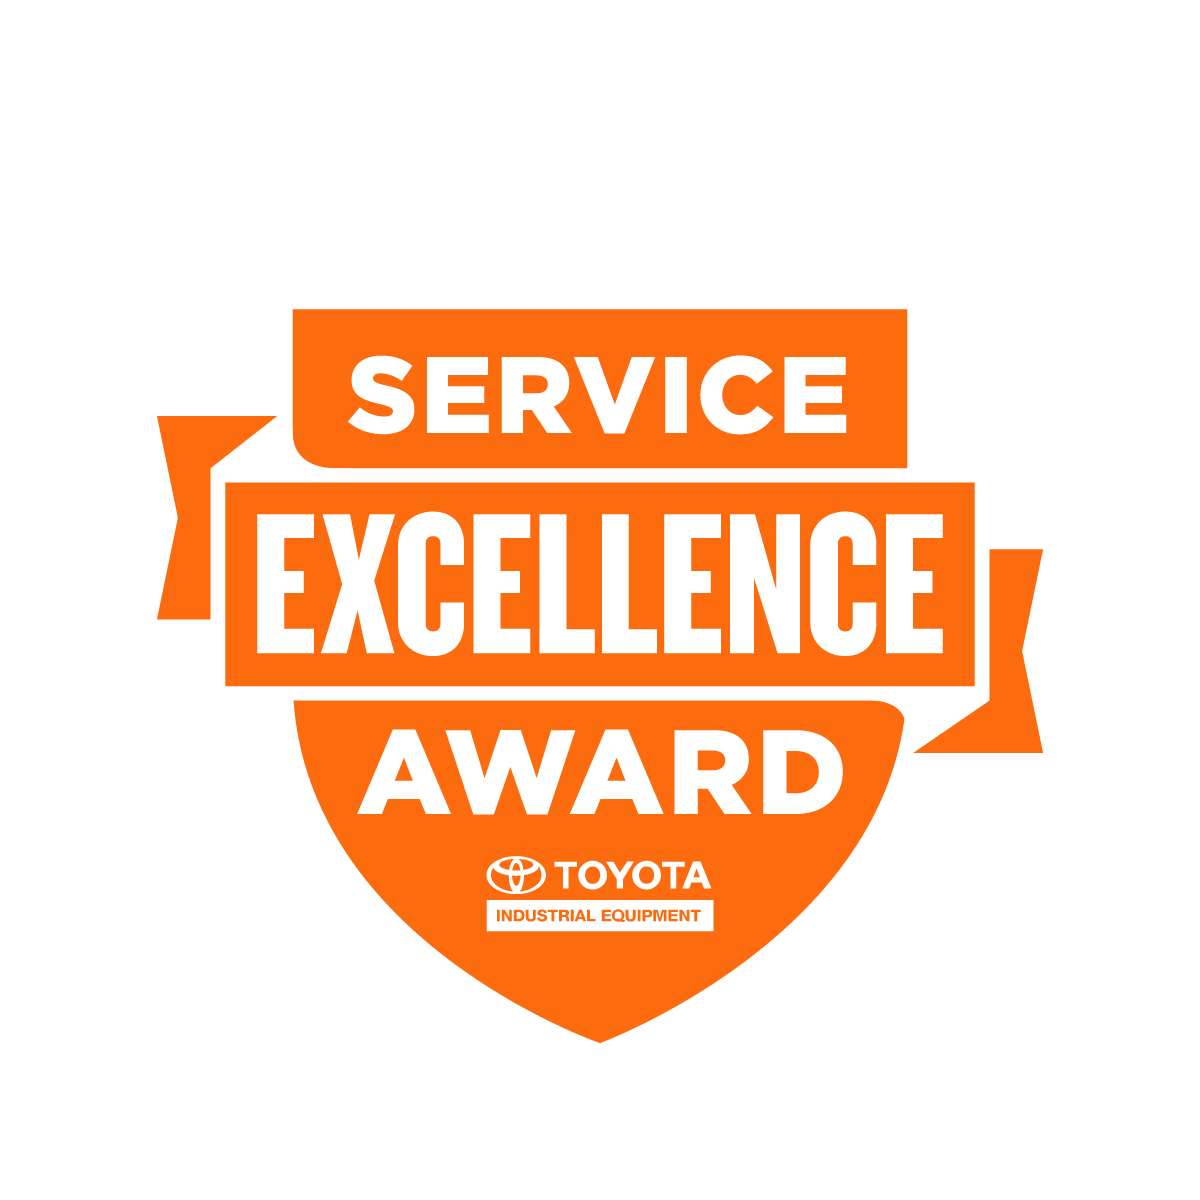 Toyota Forklift Service Excellence Award